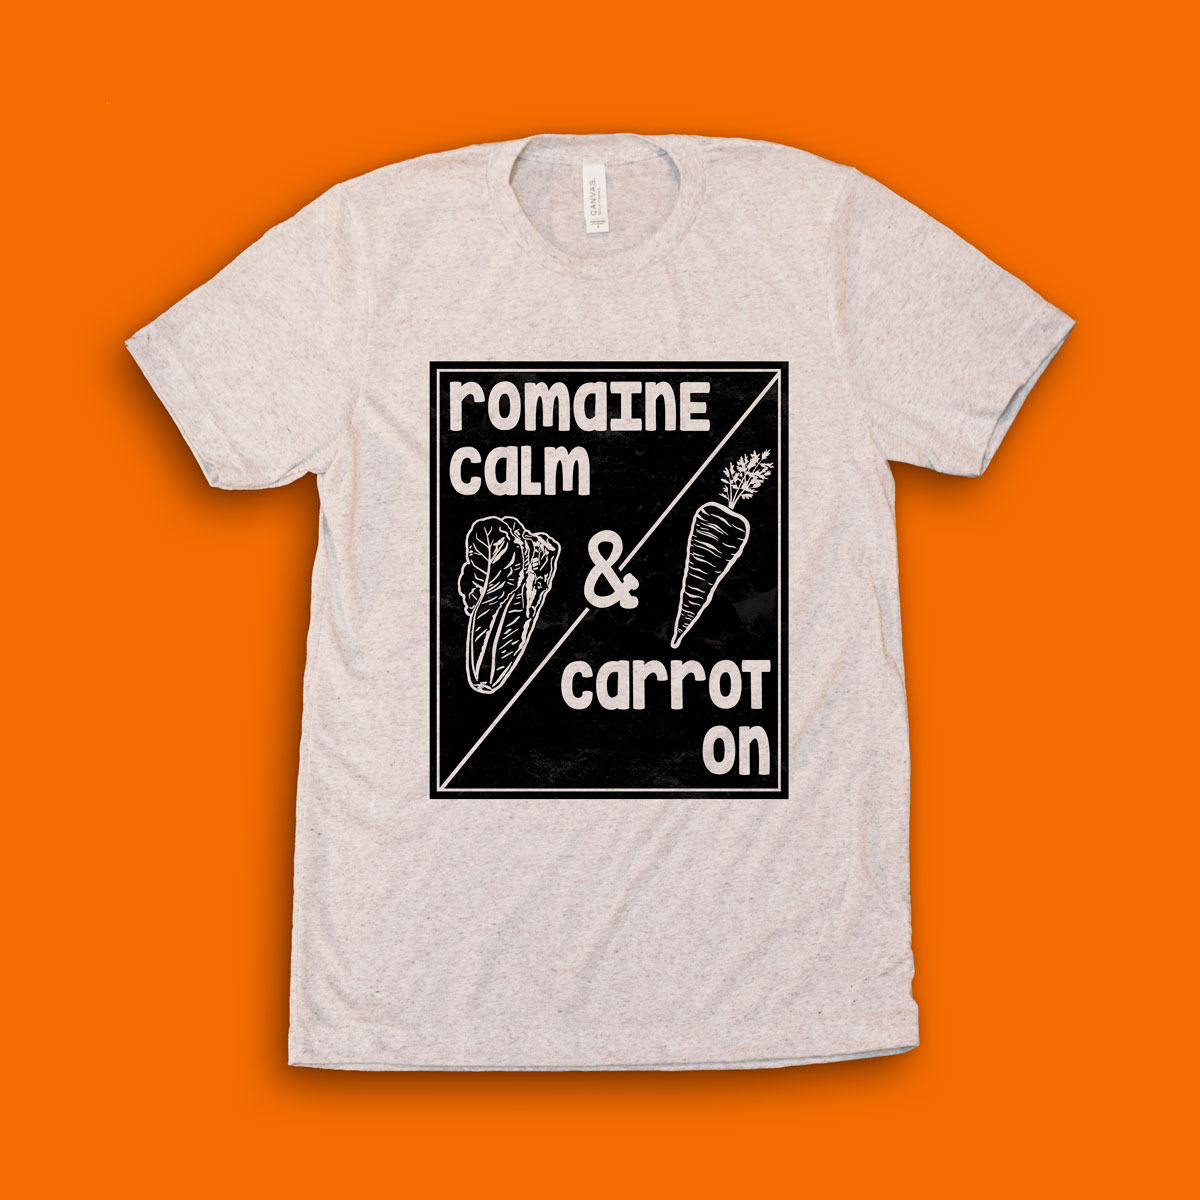 Planty-Good_Vegan-Clothing_Romaine-Calm-and-Carrot-On_Tee_front.jpg